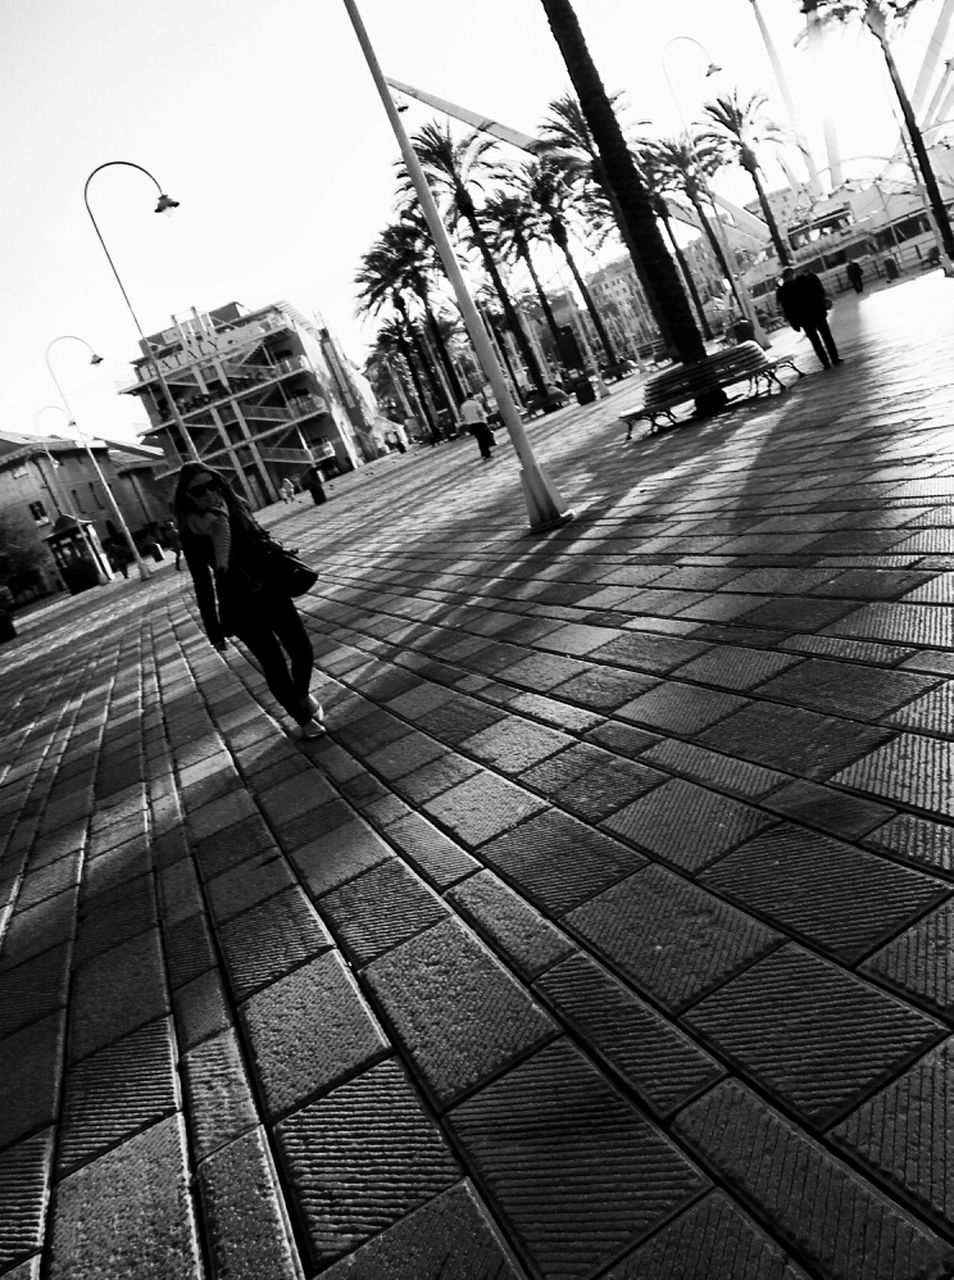 walking, full length, one person, city, outdoors, real people, architecture, day, sky, people